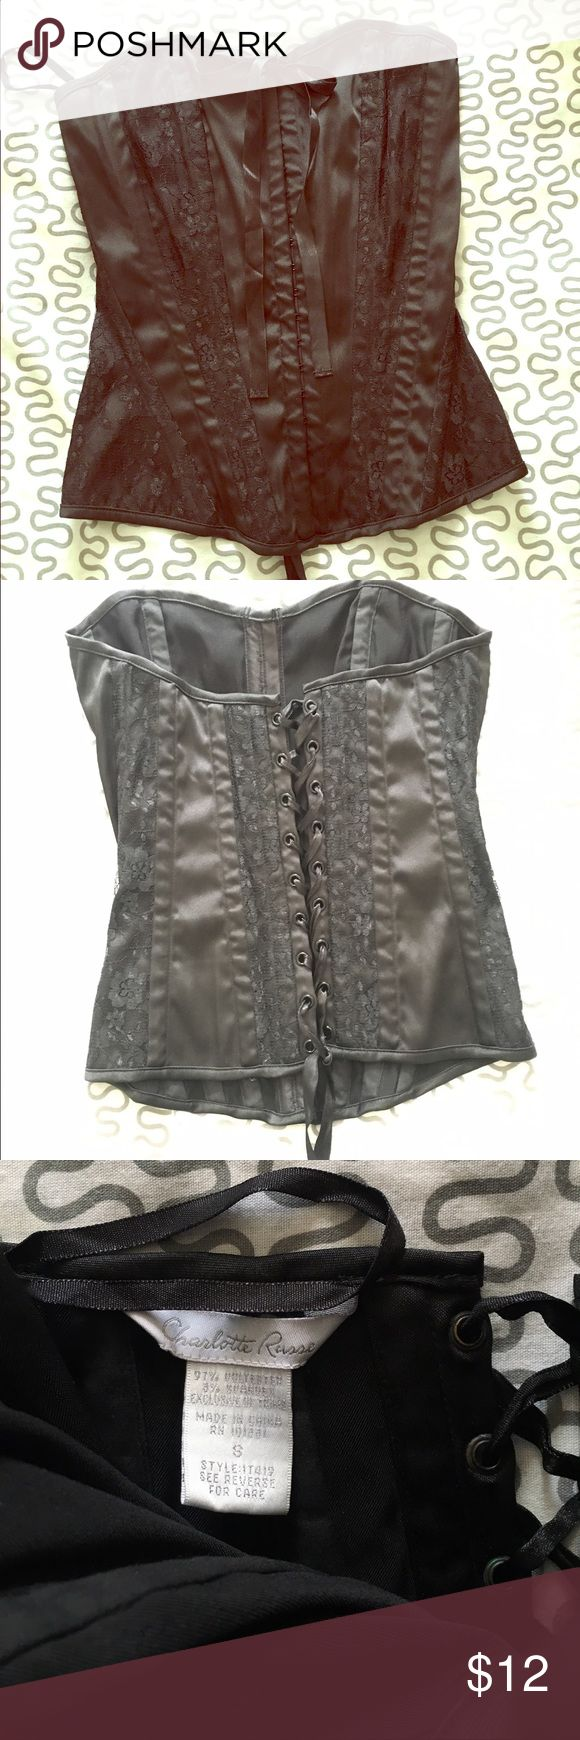 🔥Super Sexy Corset🔥 with lace applications 🔥 💥Charlotte Russe lace Up Black Corset/ Bustier with Lace Accents🔥Front Steel hook closure. Ribbon ties at chest. Dramatic lacing at back provides a slimming silhouette, Reduces waistline by up to 4 inches, and flattens the tummy. Lace trim, plastic boning. Charlotte Russe Accessories